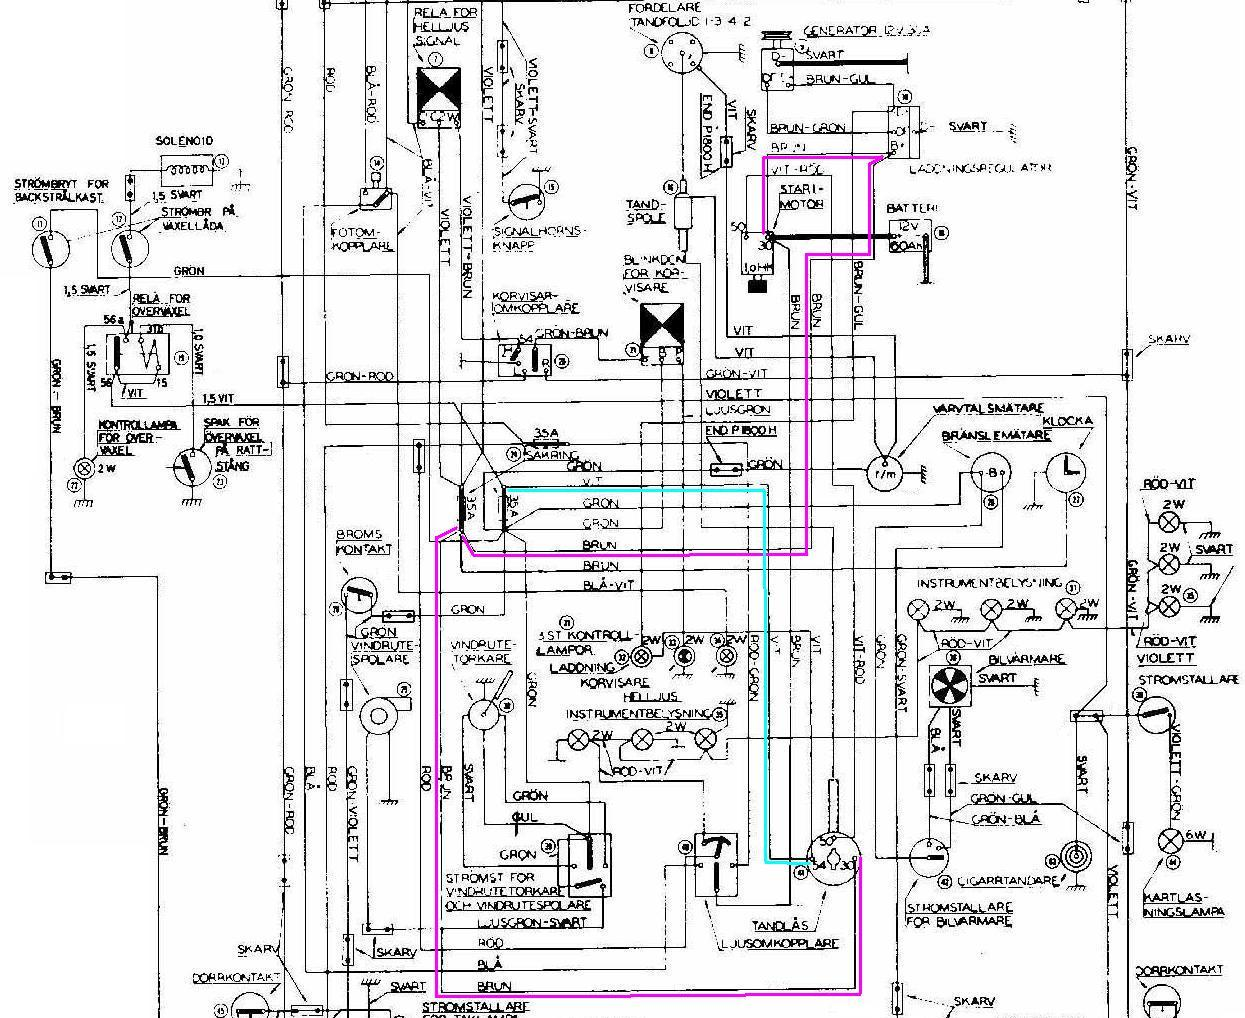 Volvo 1800 Wiring Harness Preview Diagram Ignition Swedish Vs British Design Rh Sw Em Com Penta Problems